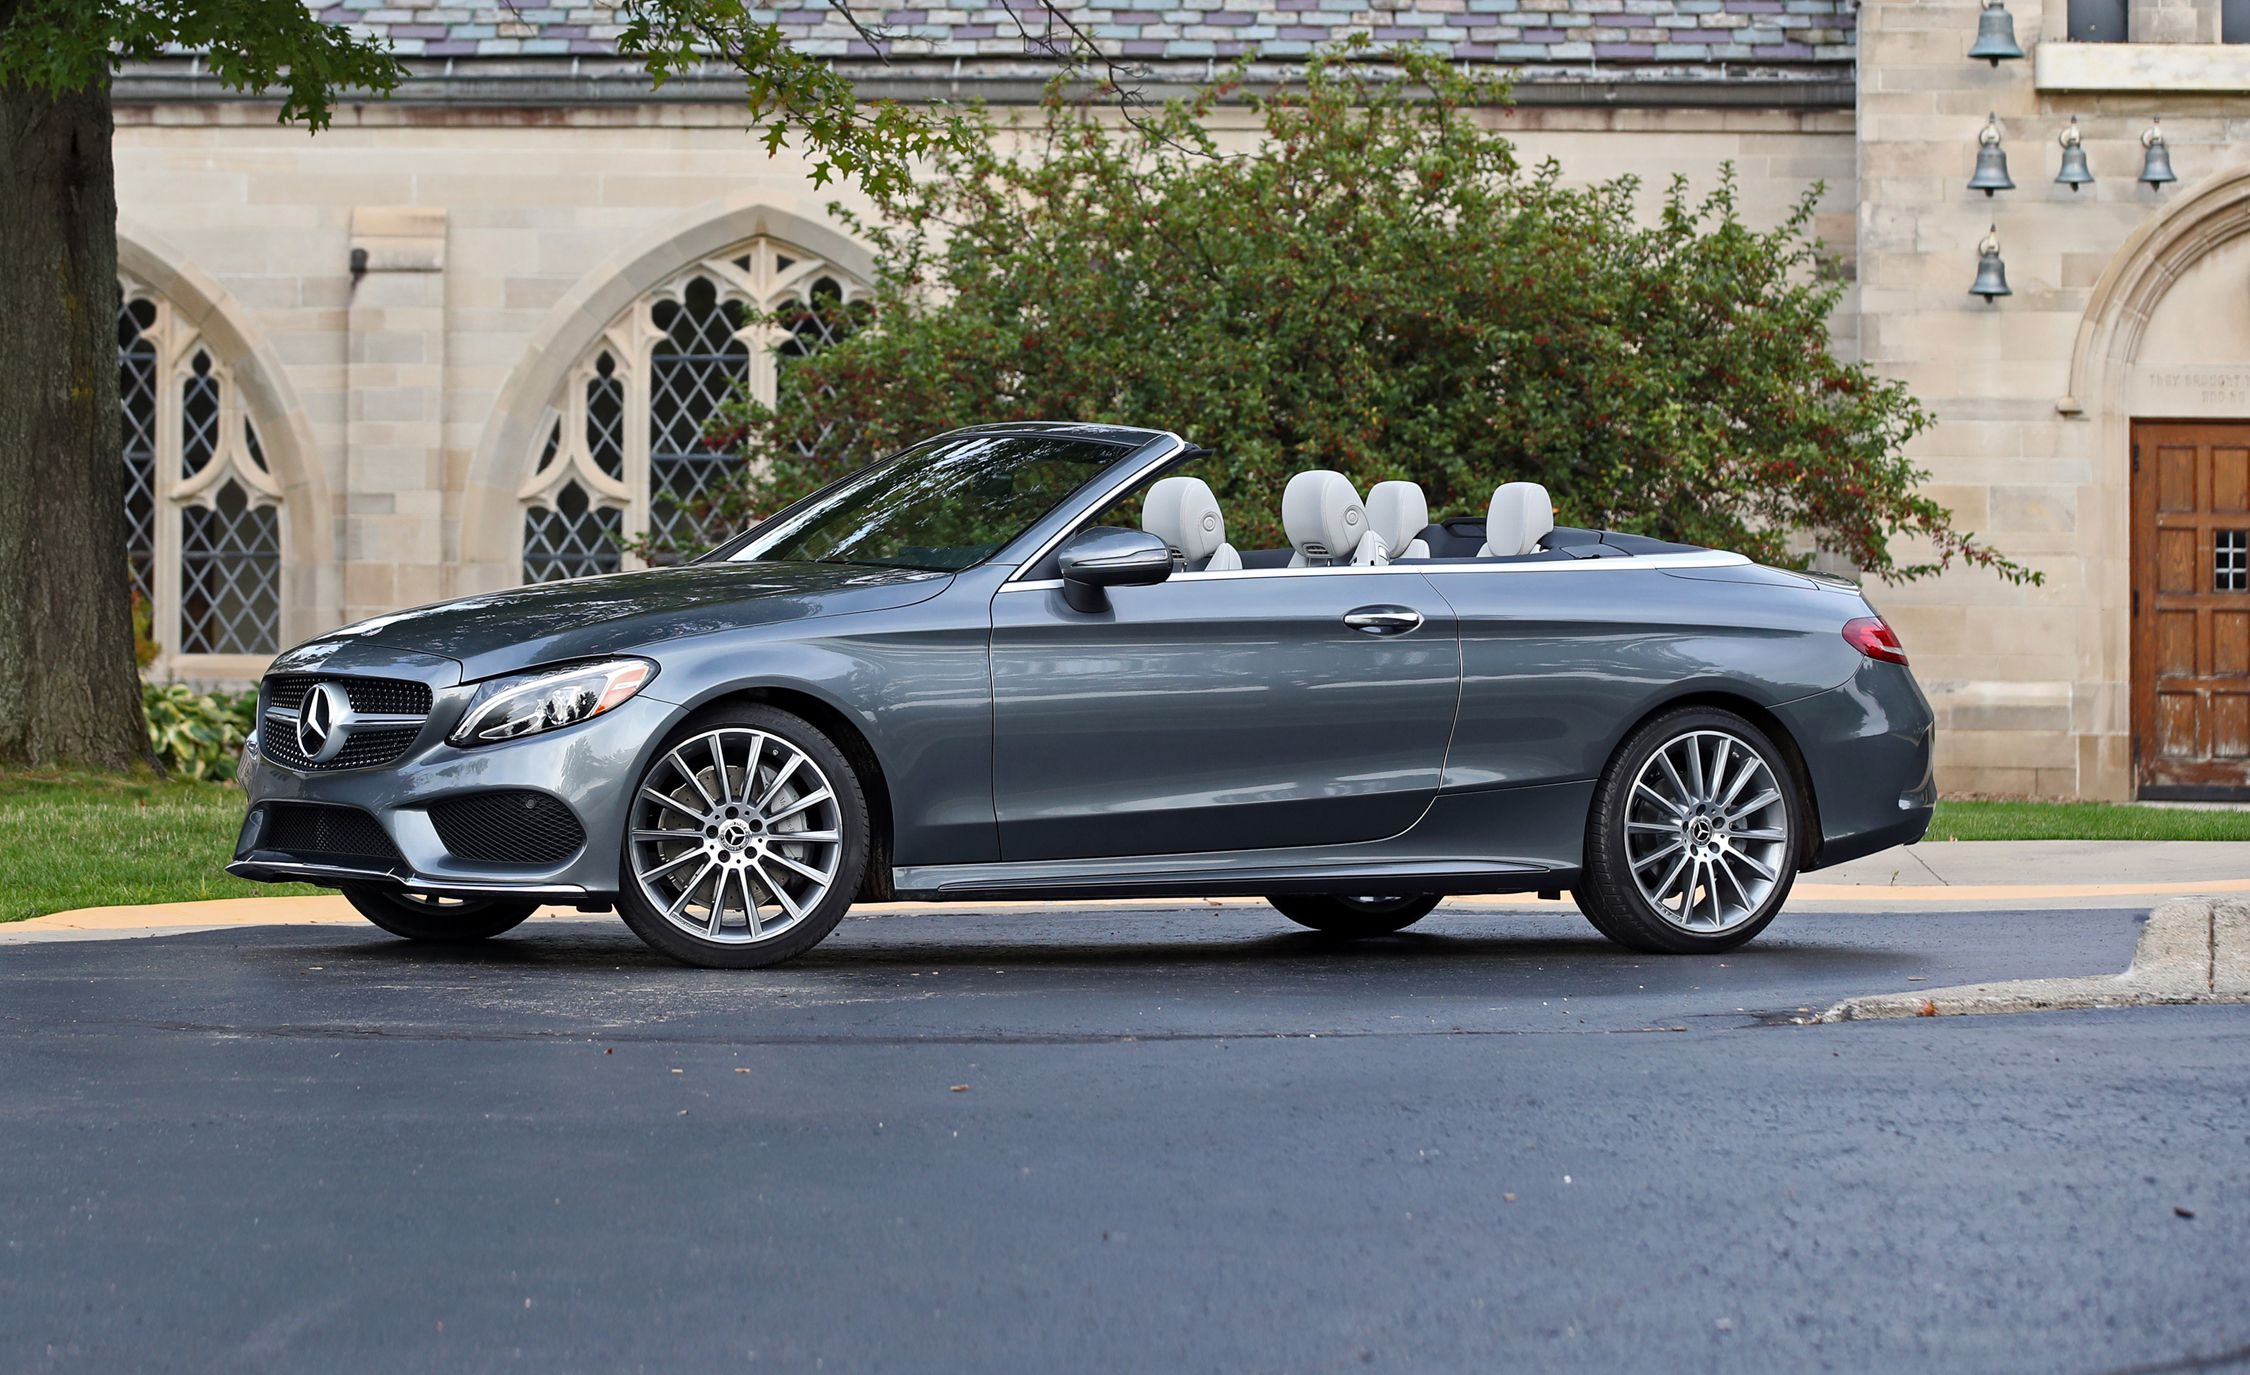 2018 Mercedes-Benz C-class Coupe and Cabriolet | eMercedesBenz